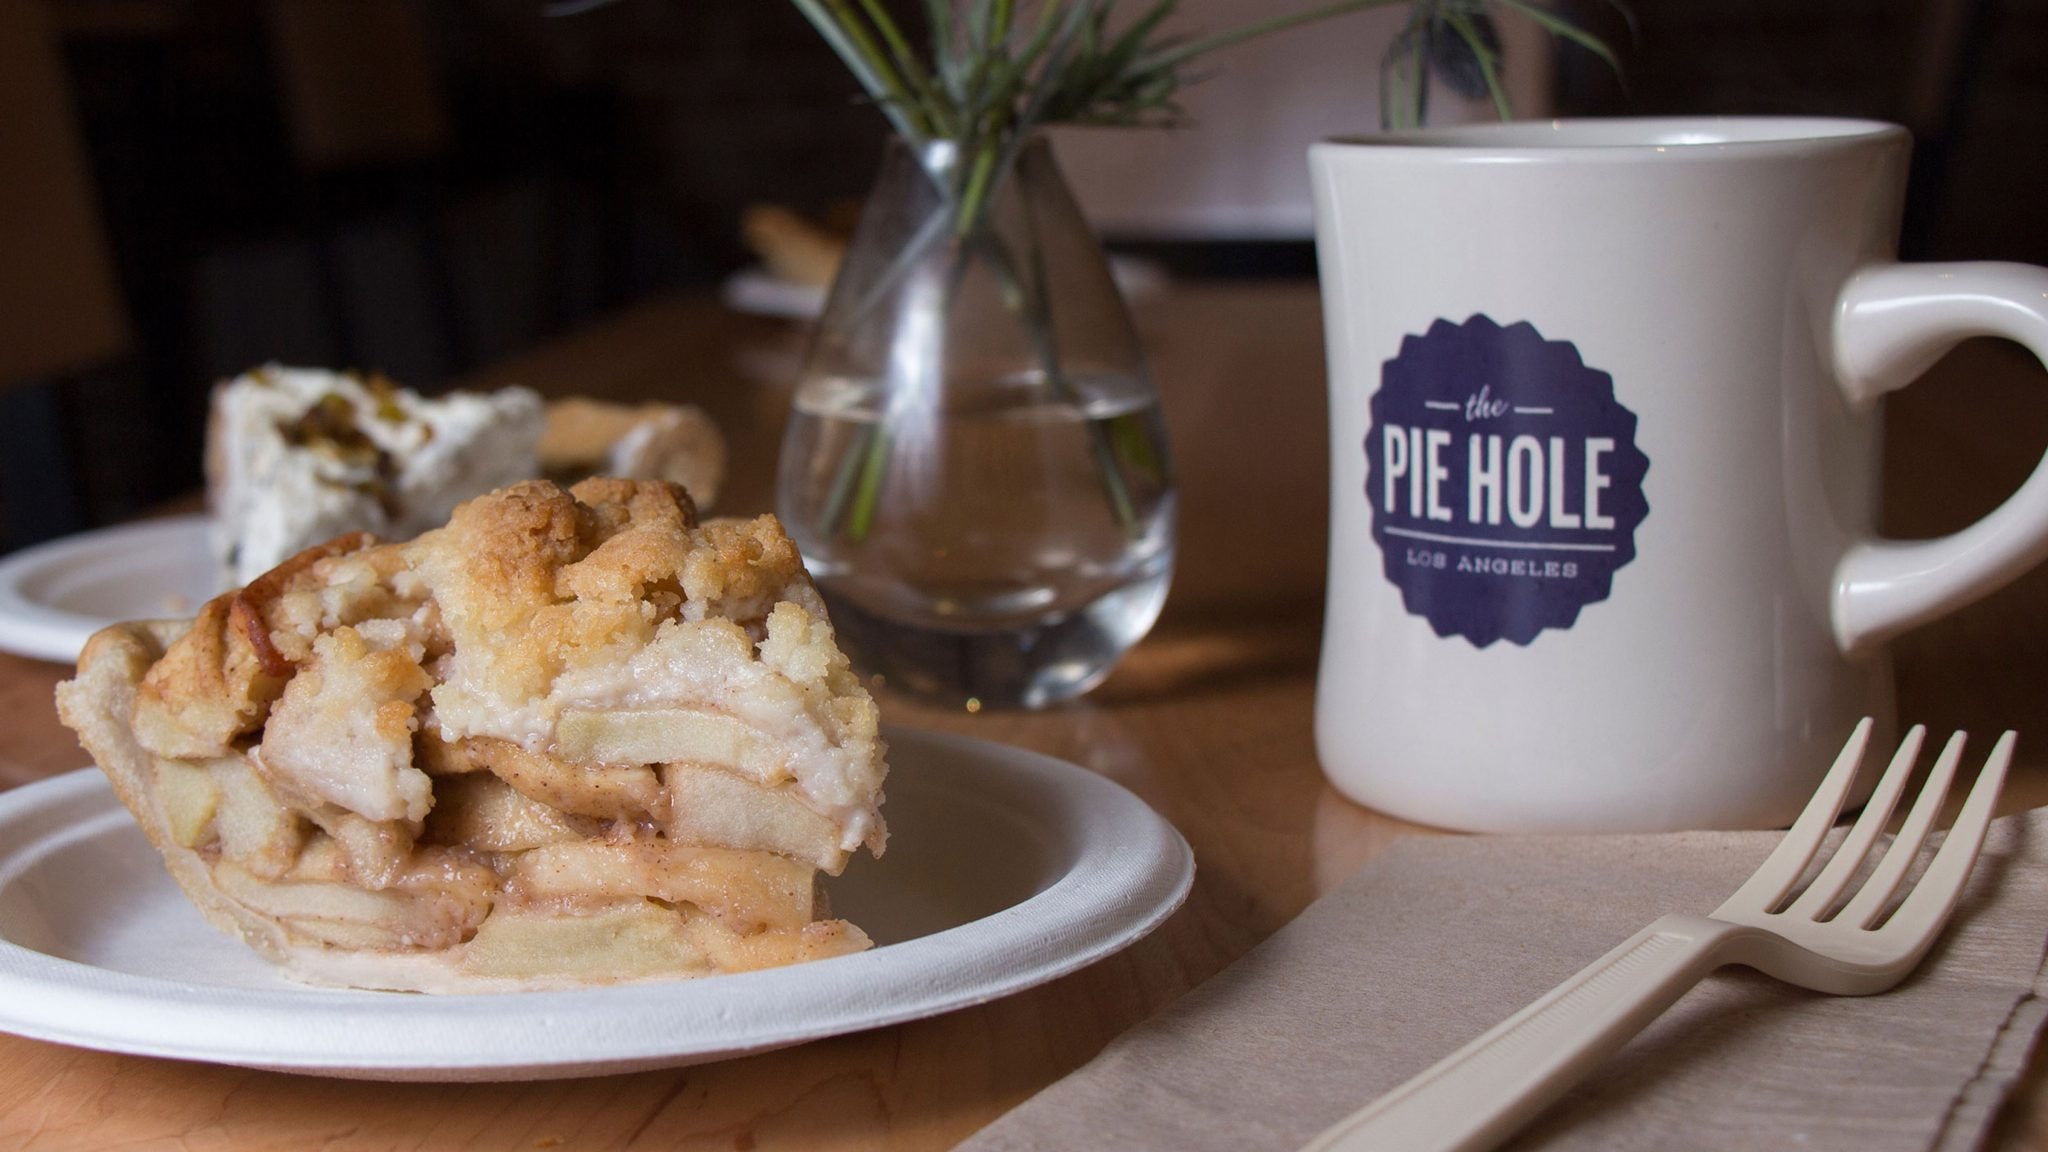 Keely Damara/Courier The Pie Hole's Mom's Apple Crumble at the Pasadena location on Colorado Blvd. on Friday, October 9, 2015. The shared space, named the Indiana Colony Market, includes Intelligentsia, Cool Haus, Pressed Juicery, World Flavorz Spices & Teas, Gilly Flowers and Pop Physique—with space for more vendors. Their original location is in downtown Los Angeles, near the Arts District.